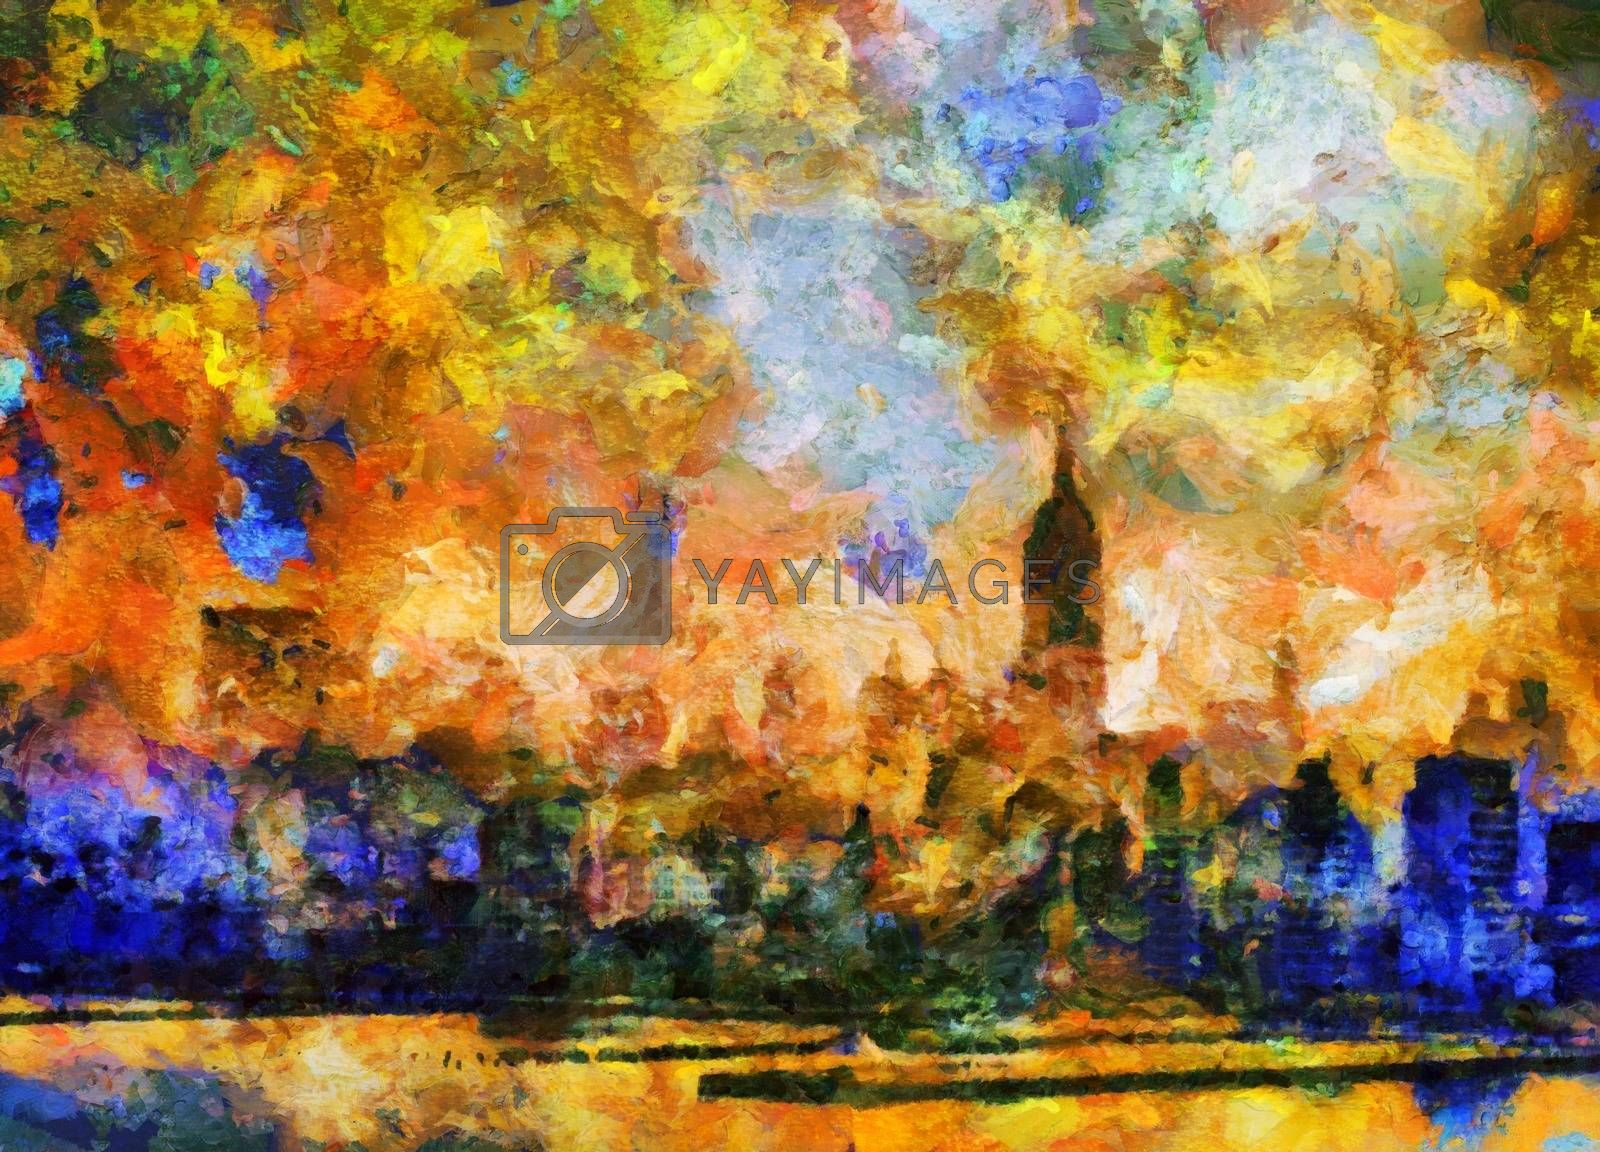 New York. Abstract Painting. 3D rendering